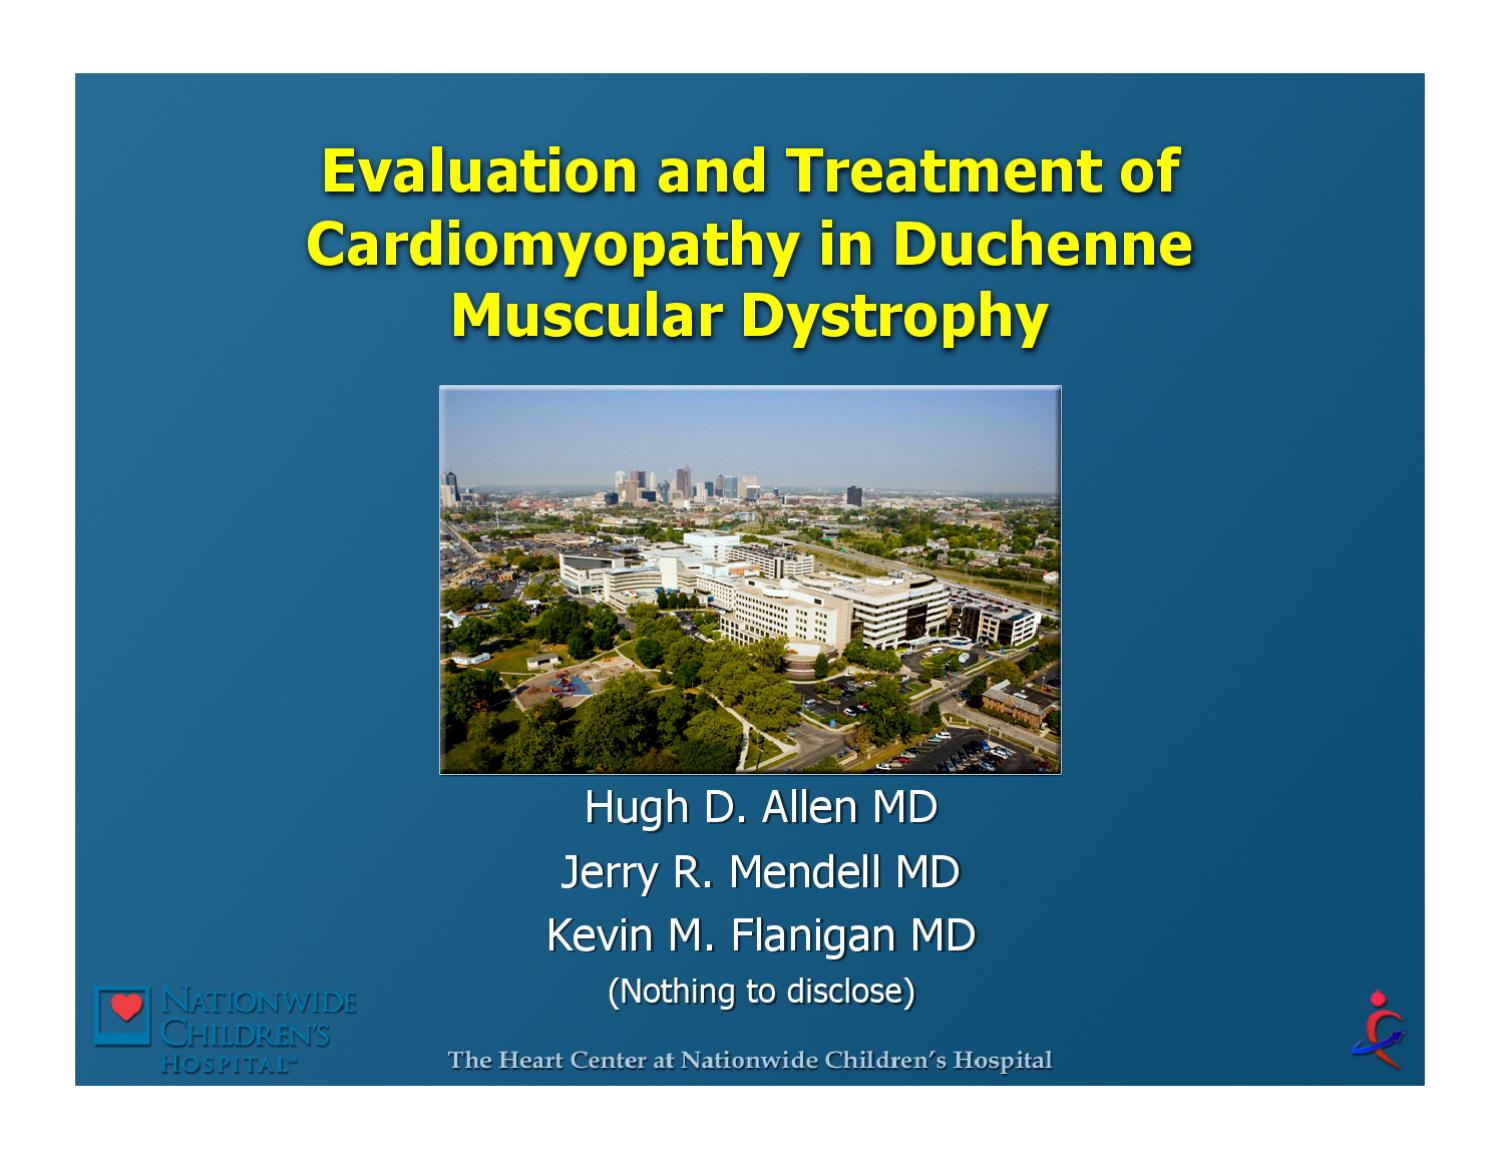 Duchenne Muscular Dystrophy Diagnosis Stories Evaluation And Treatment Of Cardiomyopathy In Duchenne